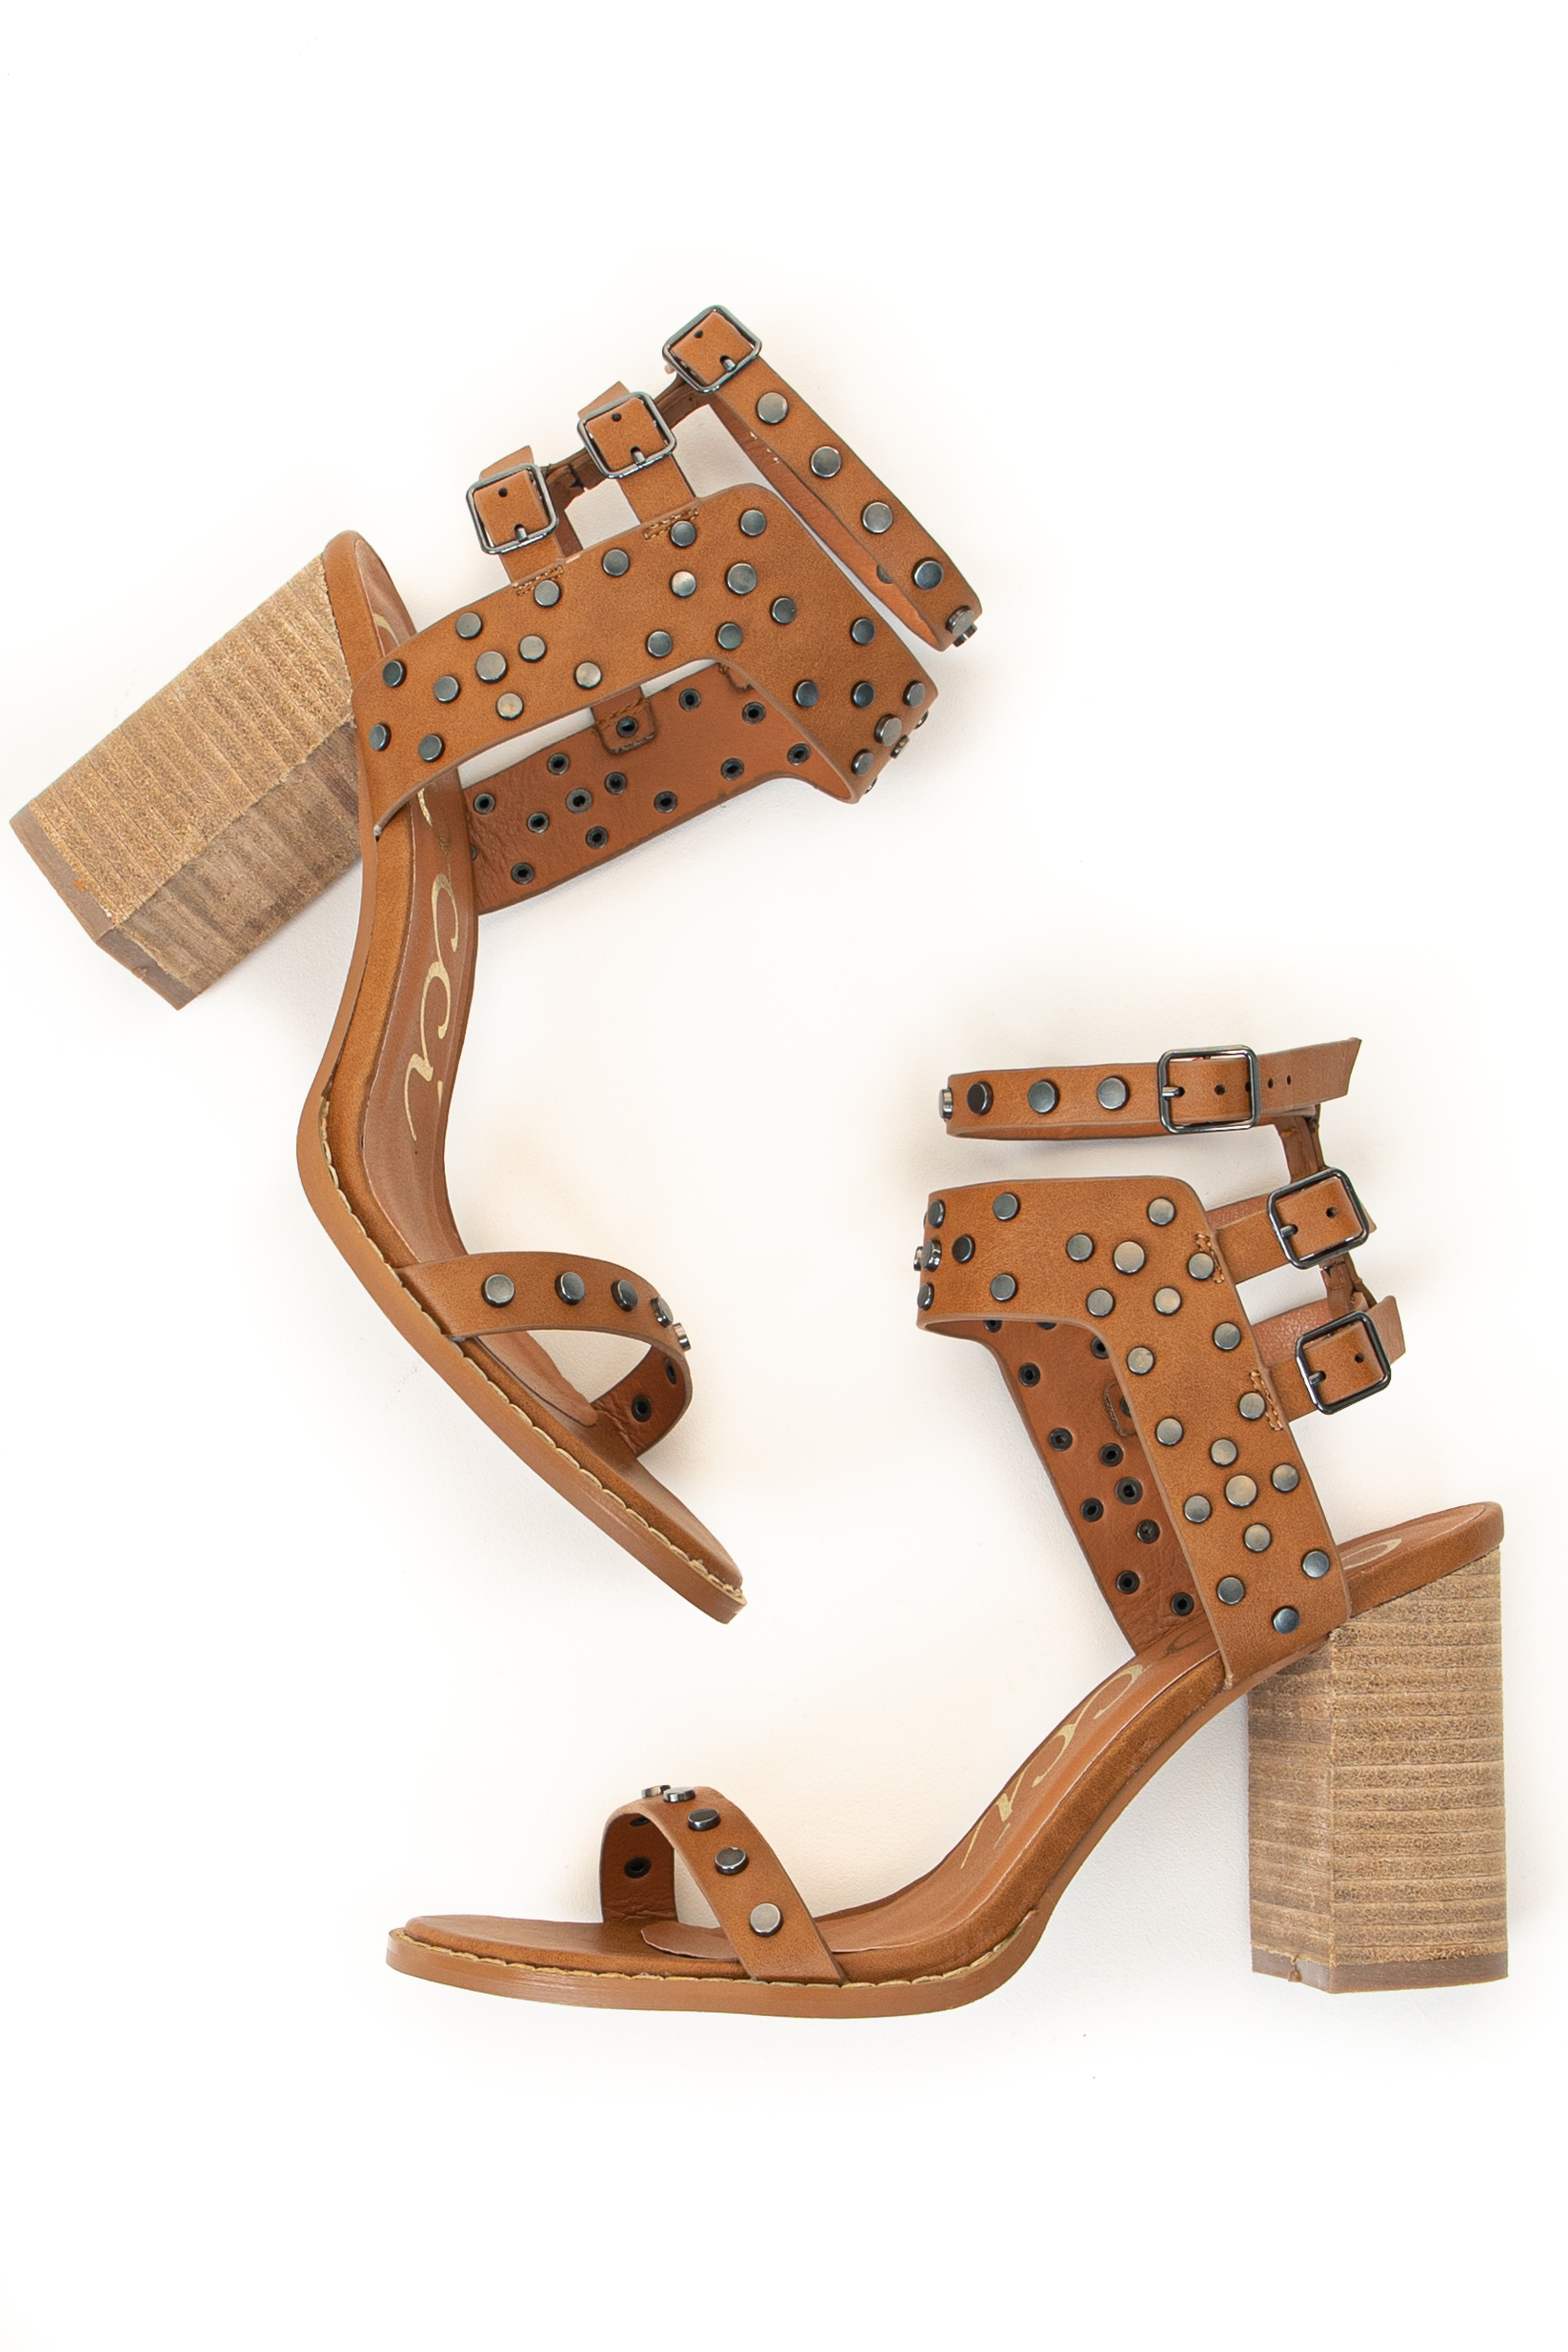 Cognac Open Toe High Heel Sandal with Strap and Stud Details